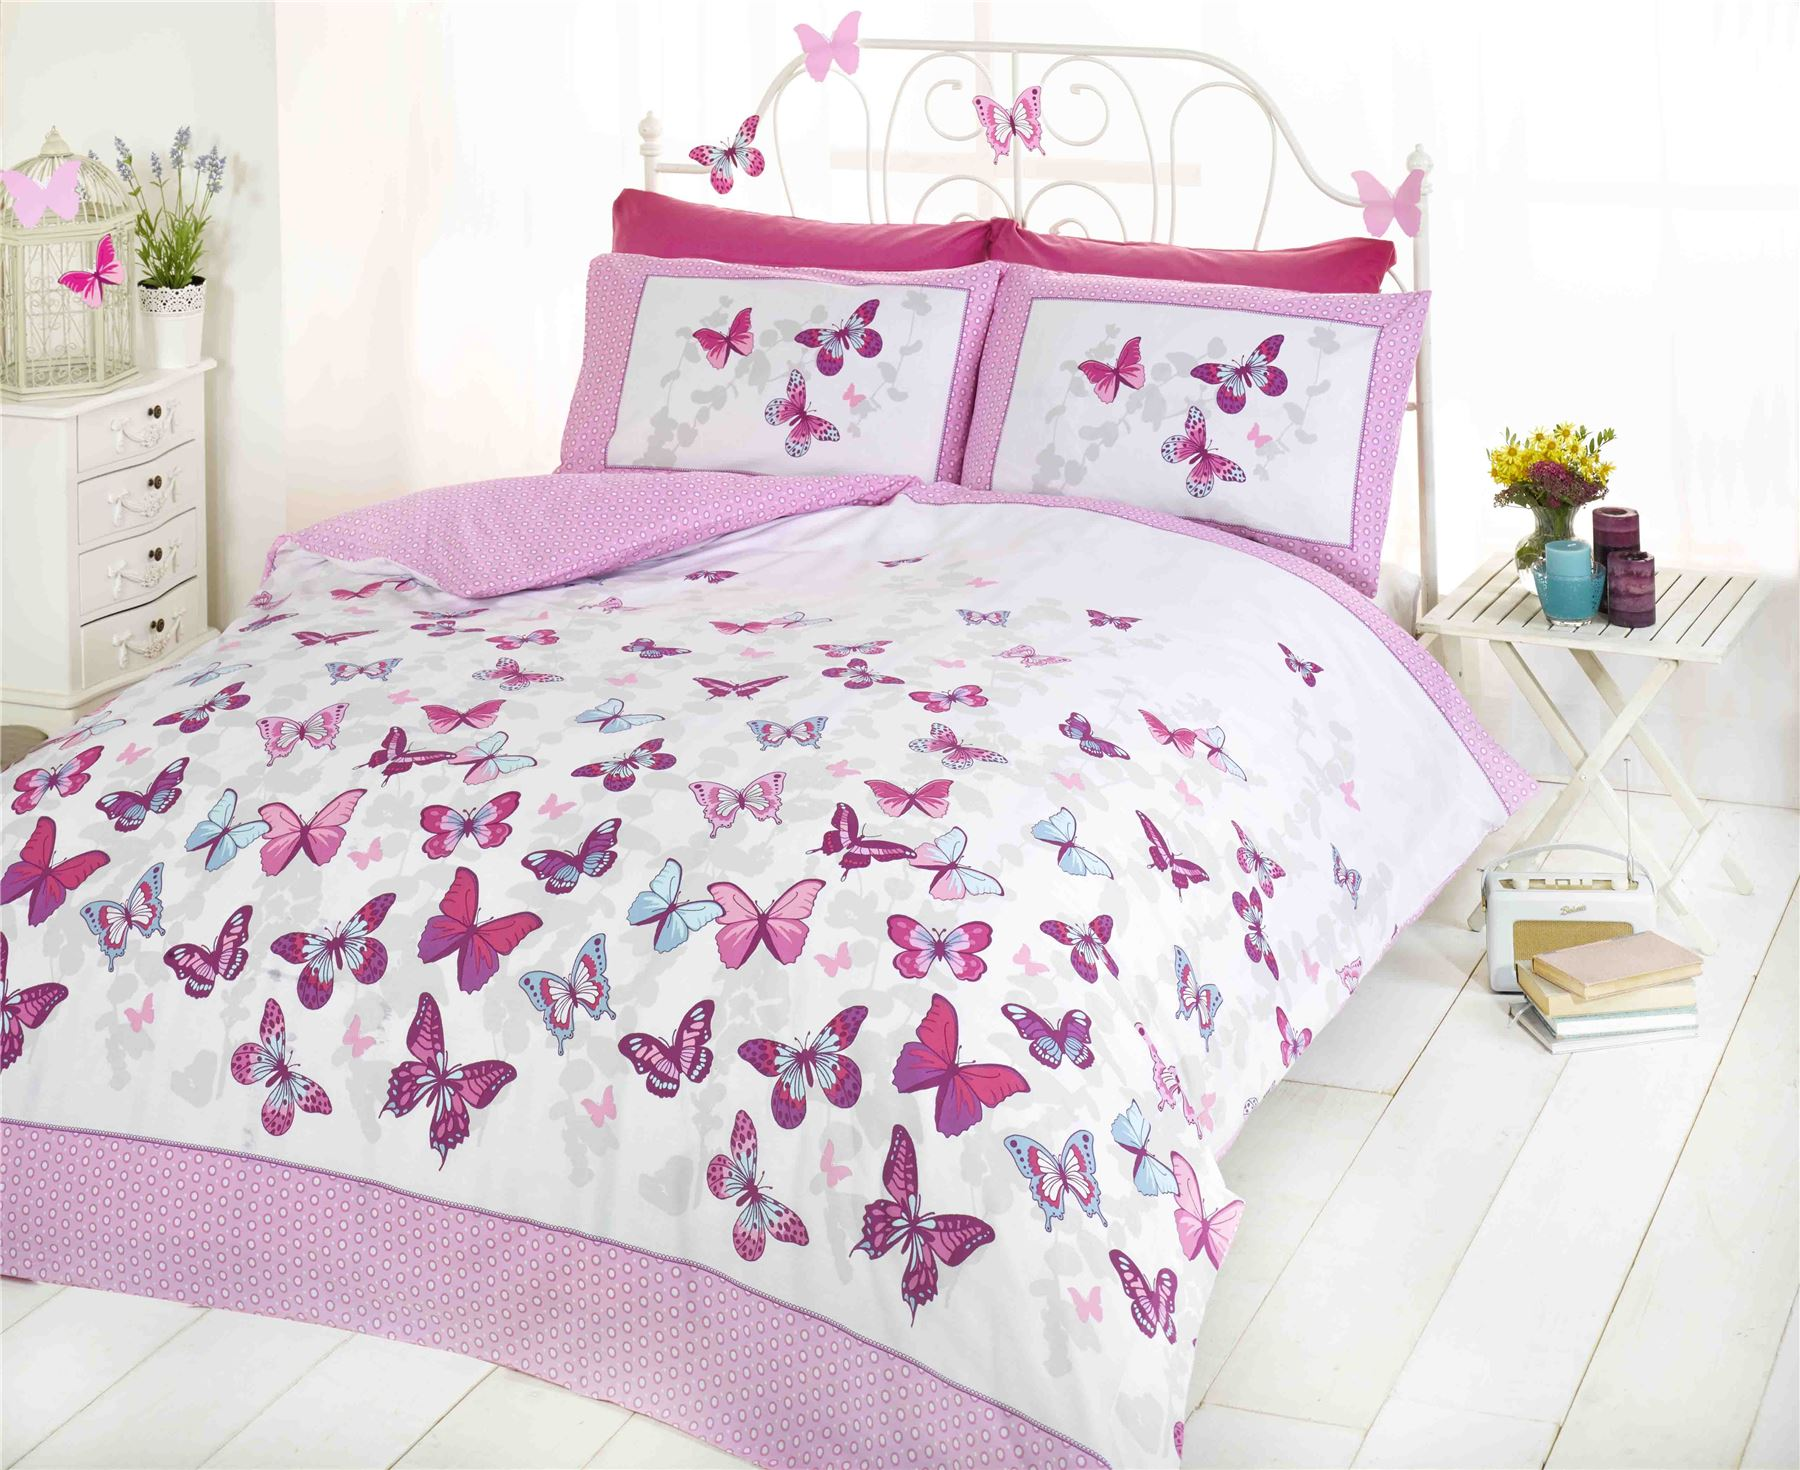 Flutter butterfly butterflies pink girls childrens bedding quilt set duvet co - Couette 140x200 ikea ...